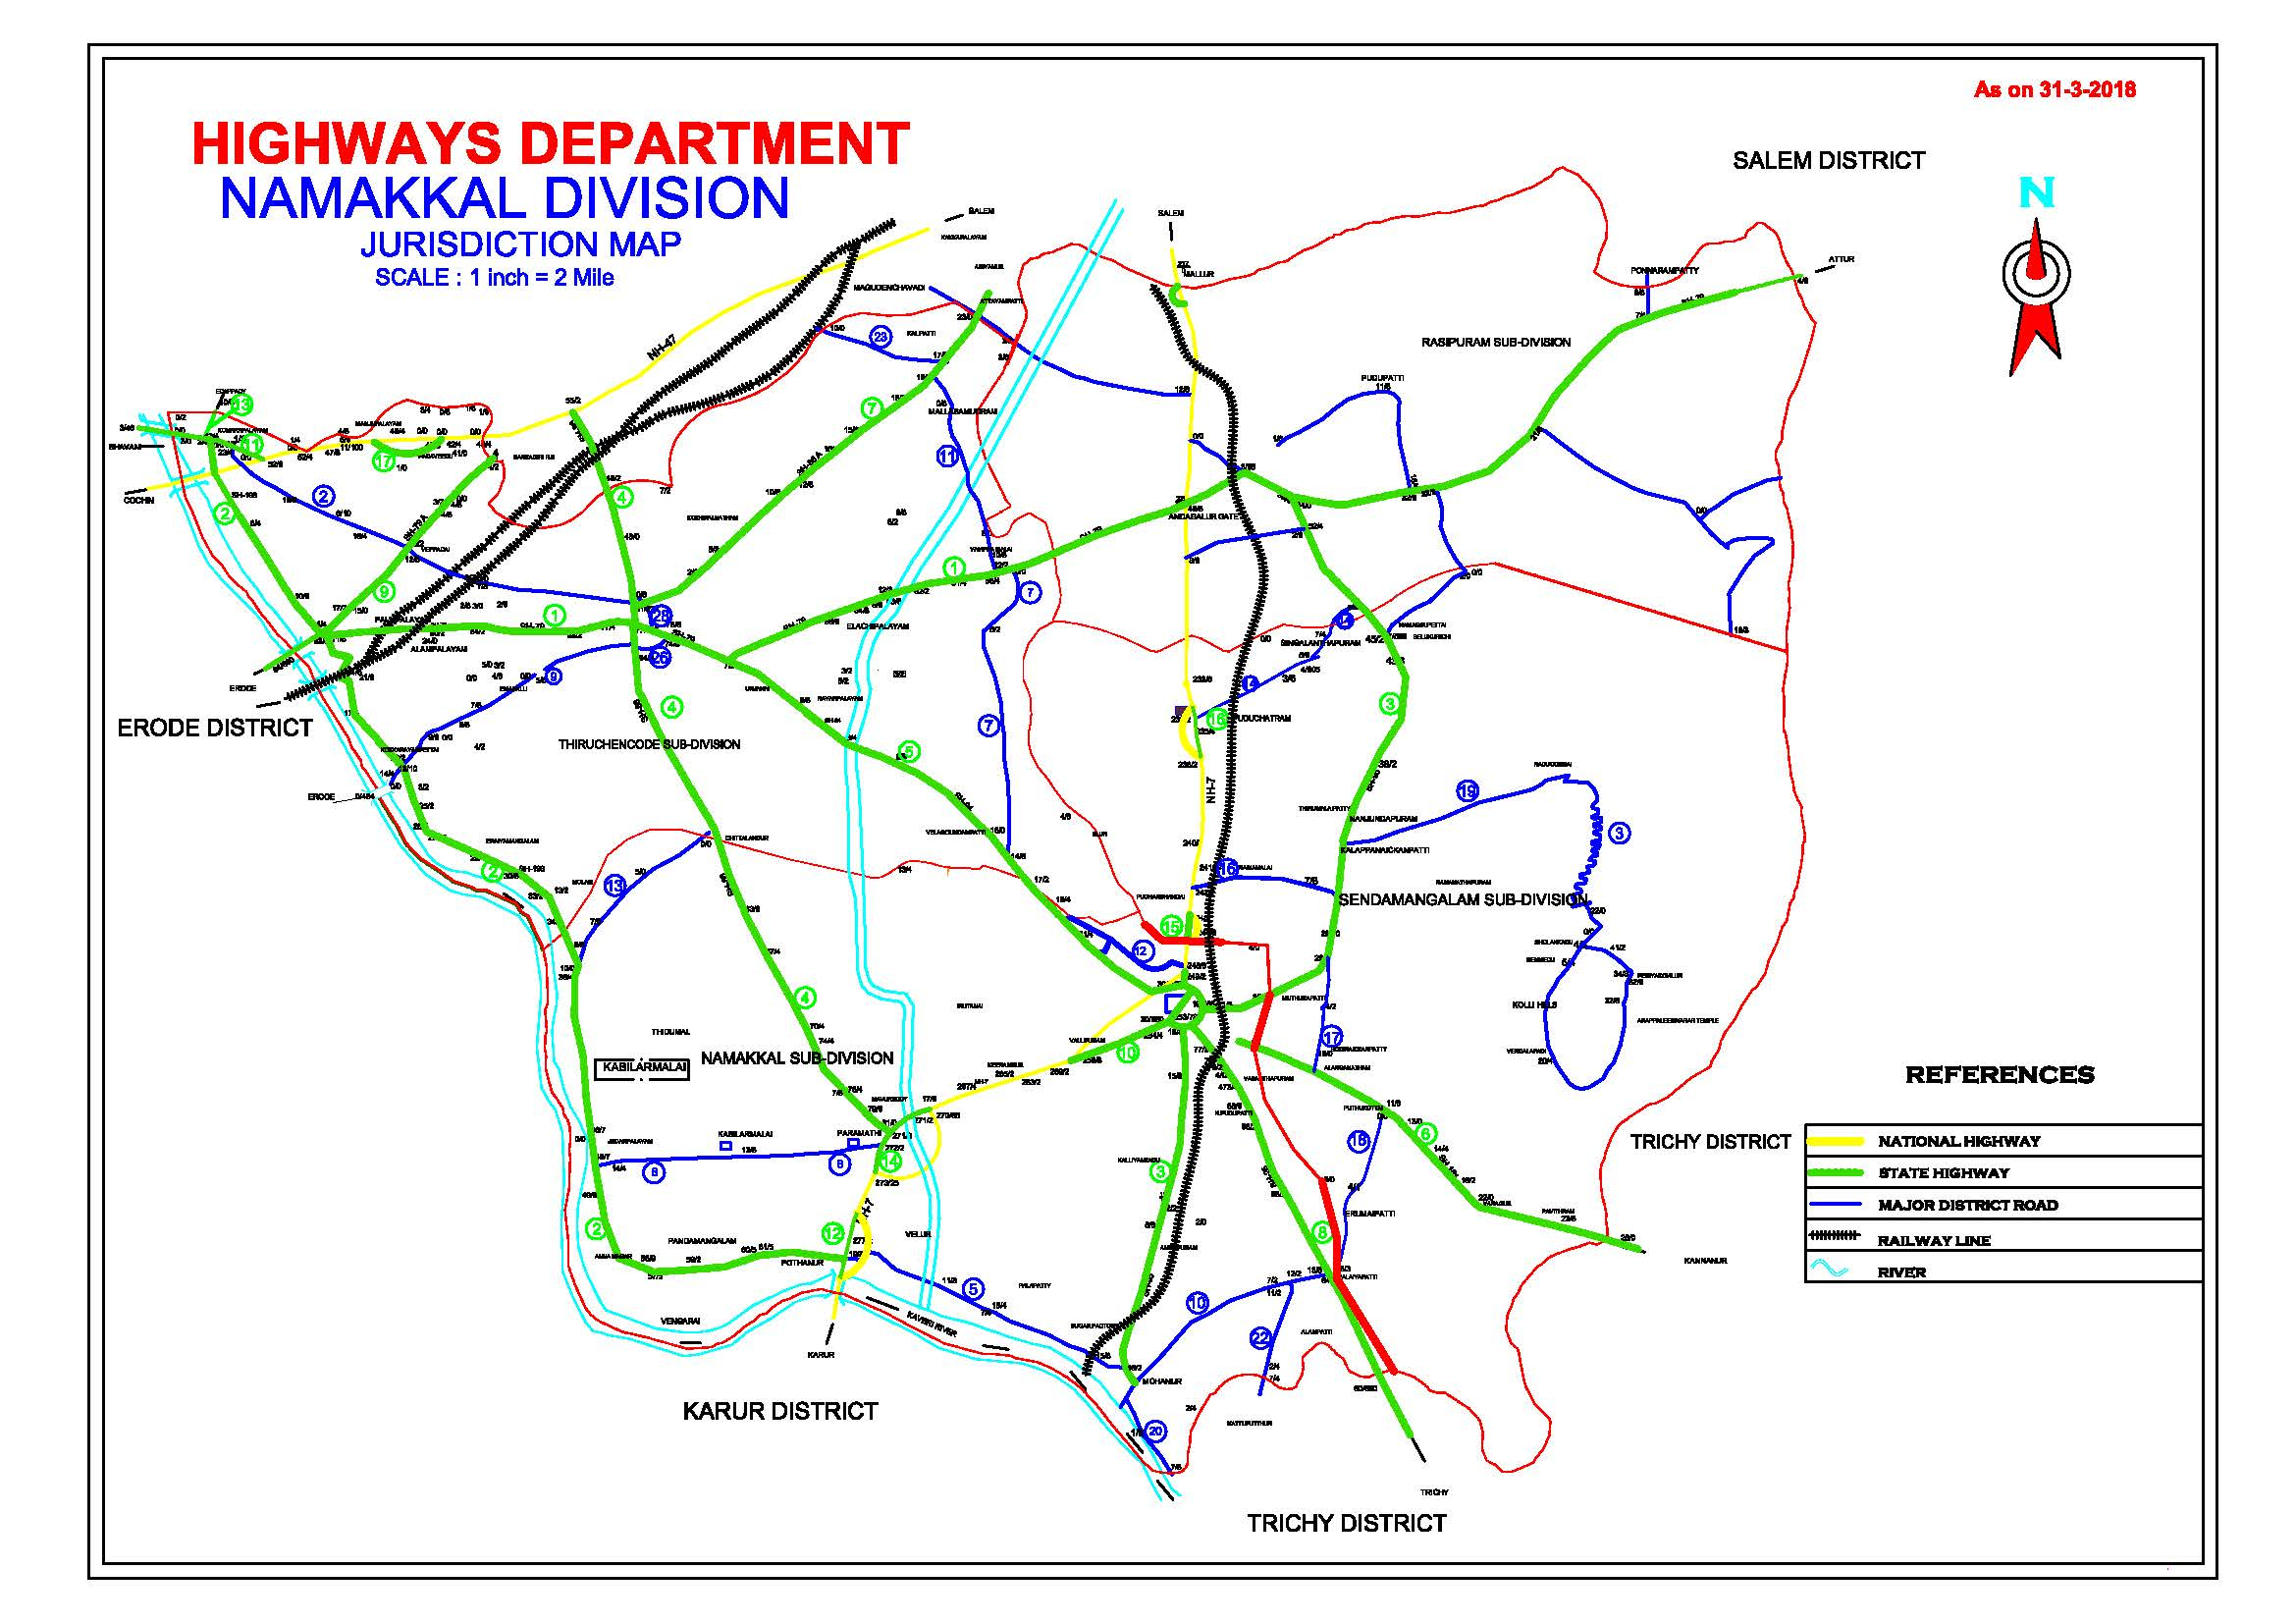 Namakkal District Highway Map